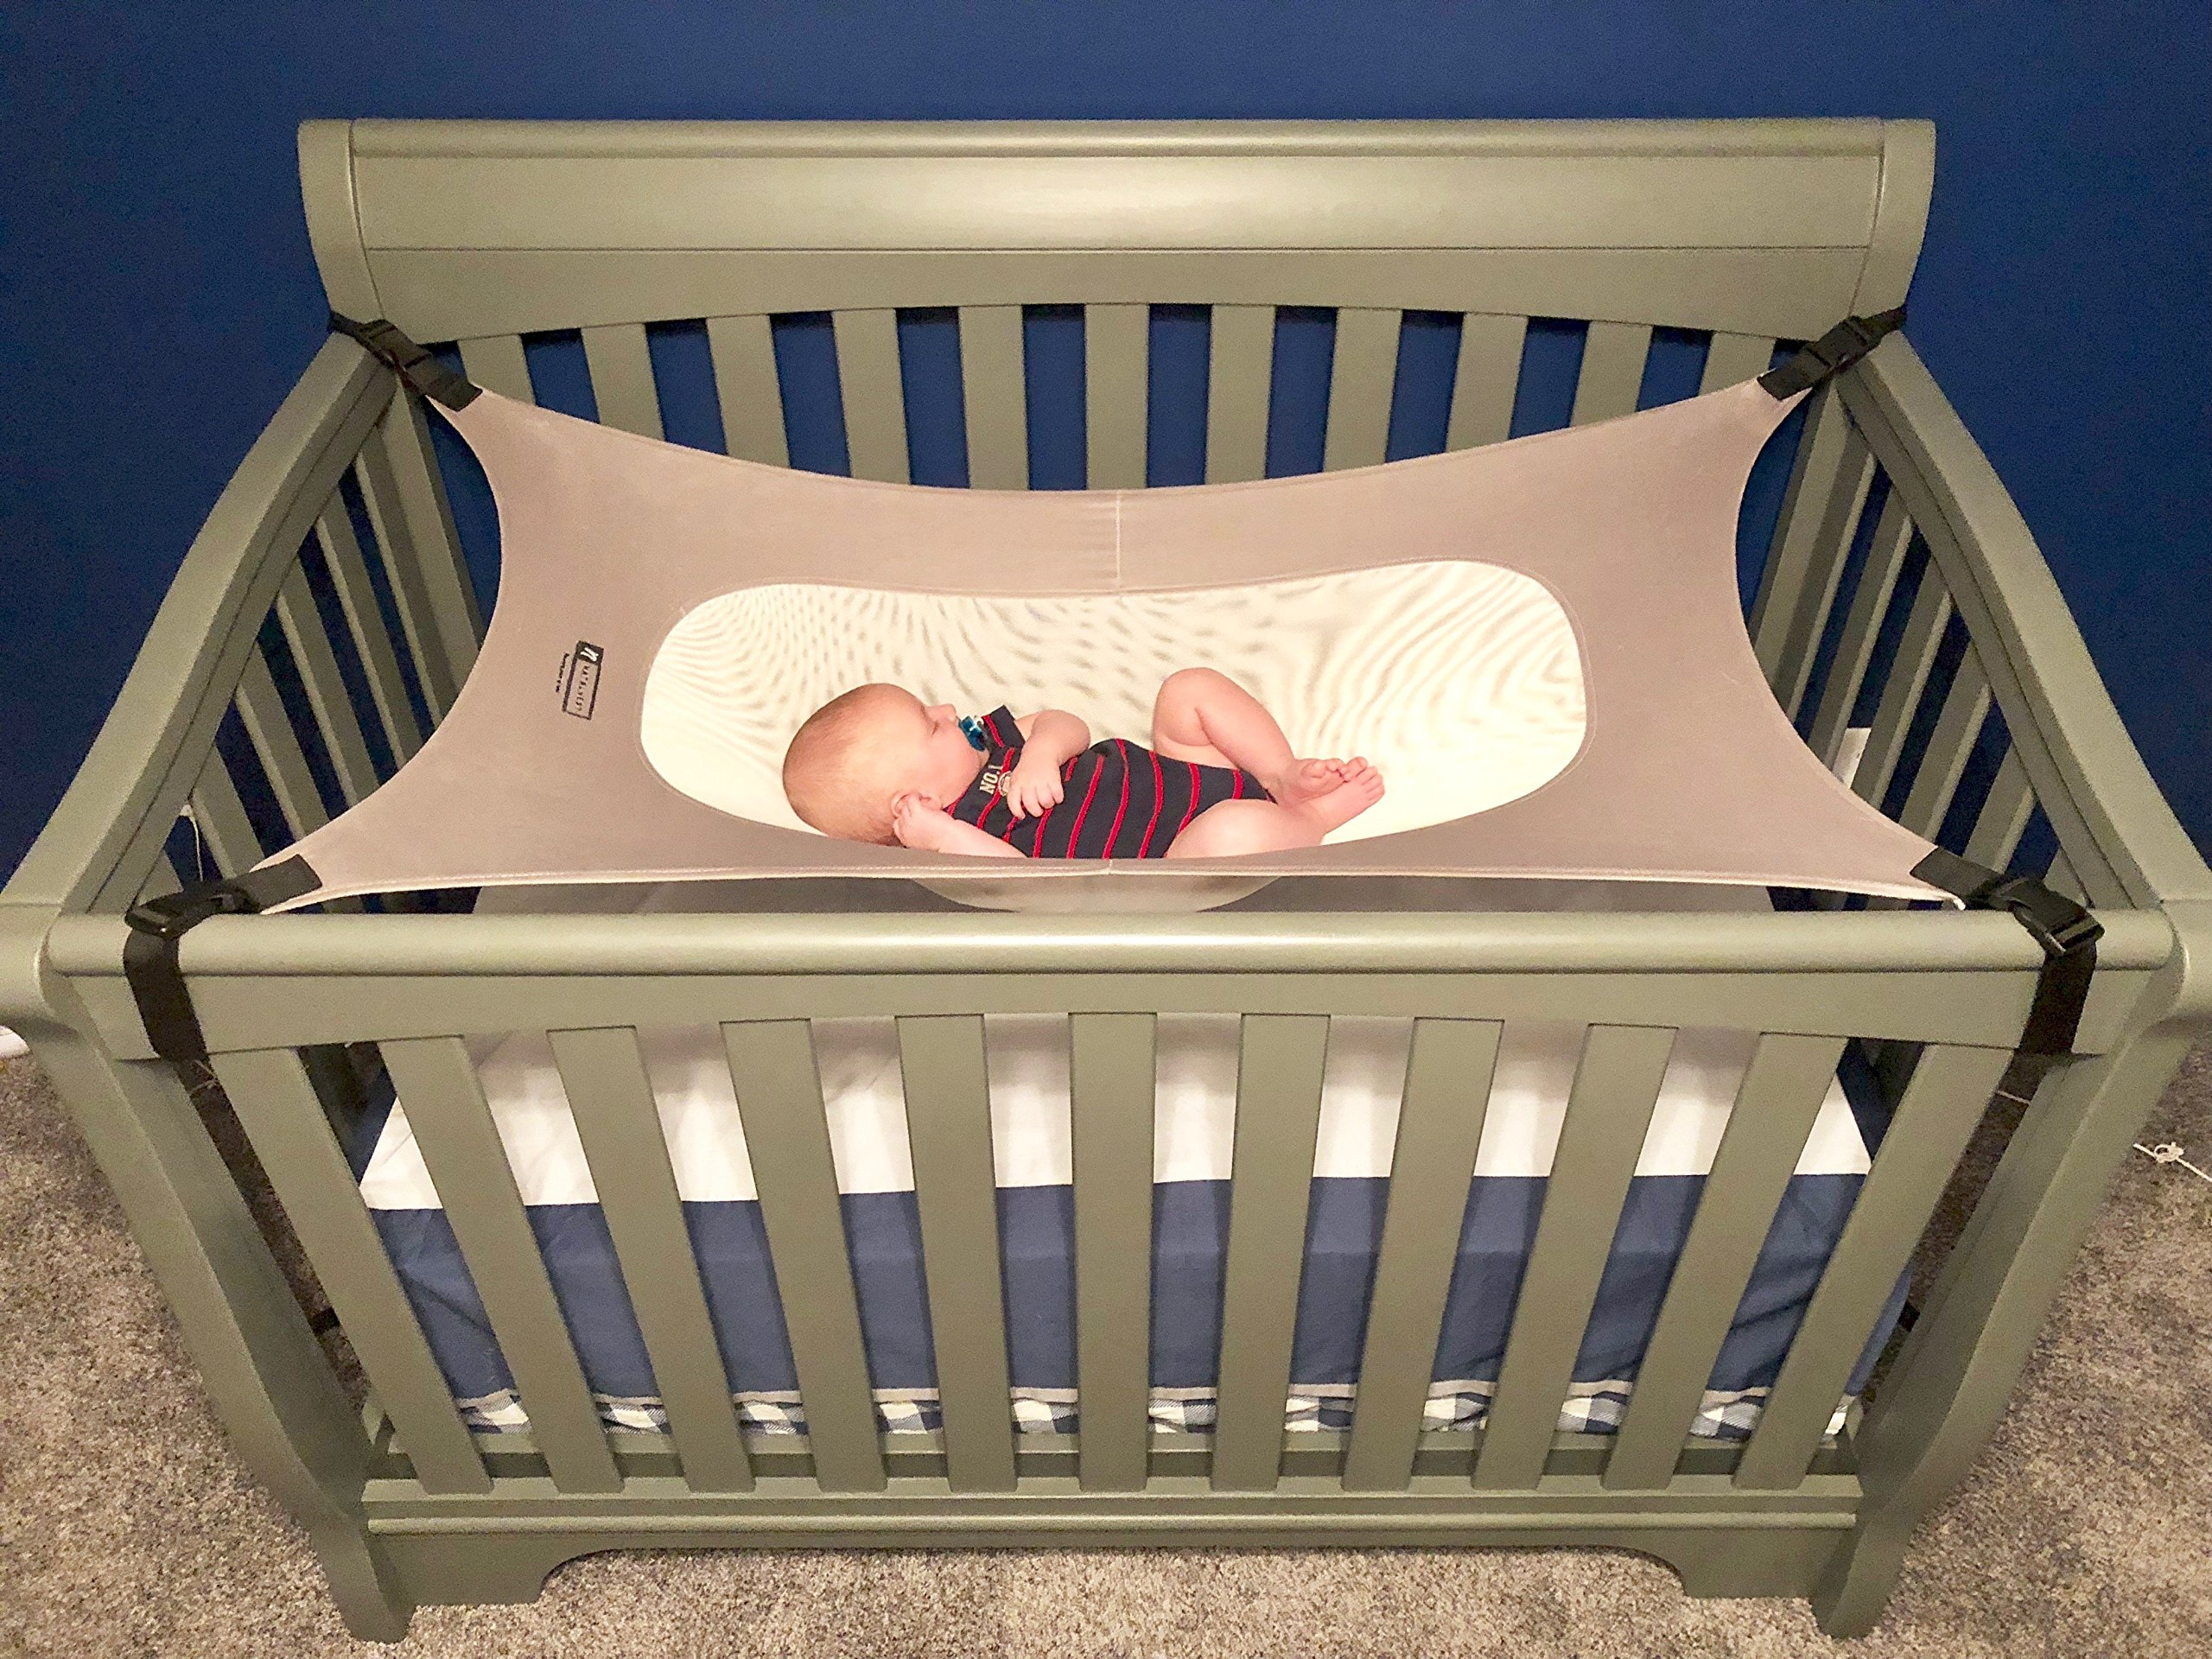 Natal Nest Baby Crib Hammock, Premium Breathable Materials, Quality Ensured Infant Nursery Bed for Infants 0-9 Months.